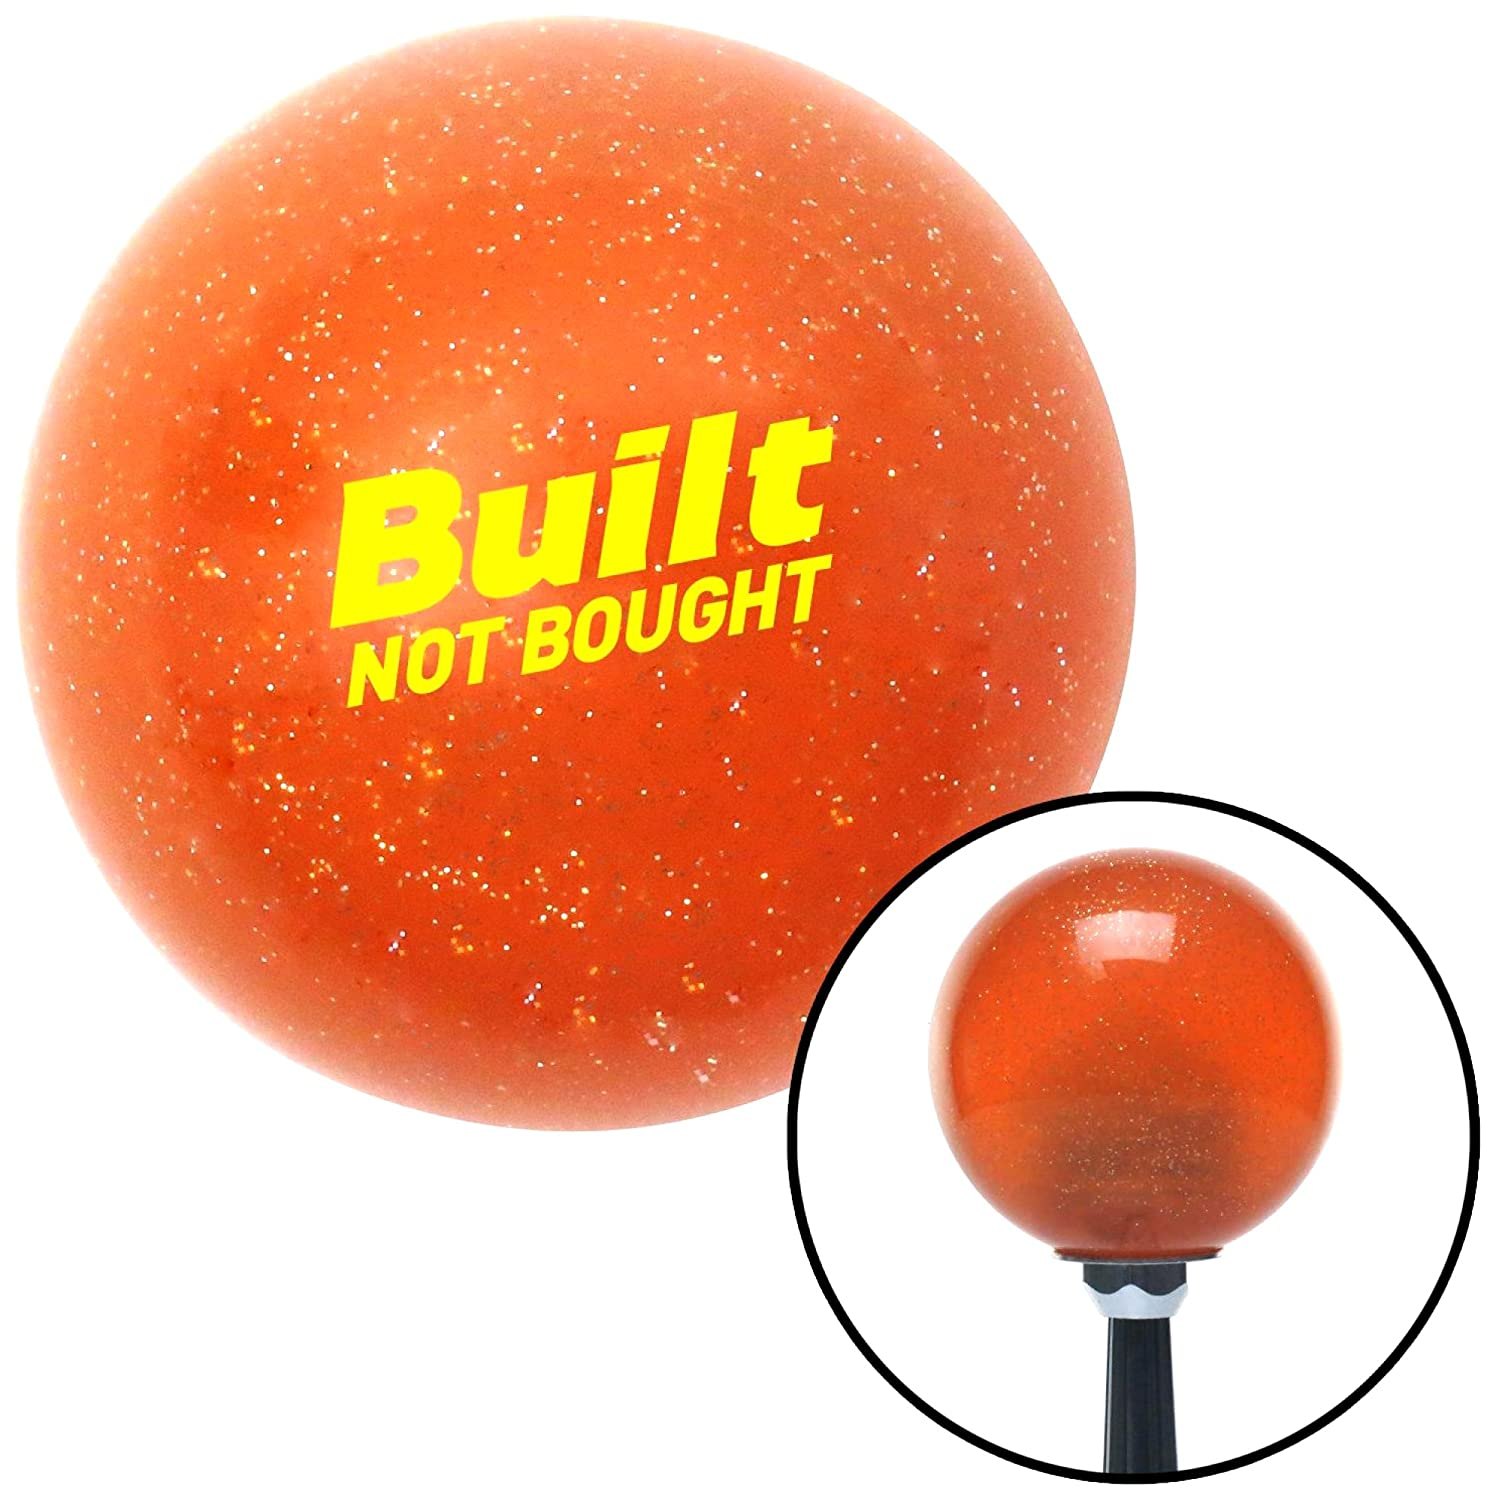 American Shifter 327597 Yellow Built Not Bought Simple Orange Metal Flake Shift Knob with M16 x 1.5 Insert